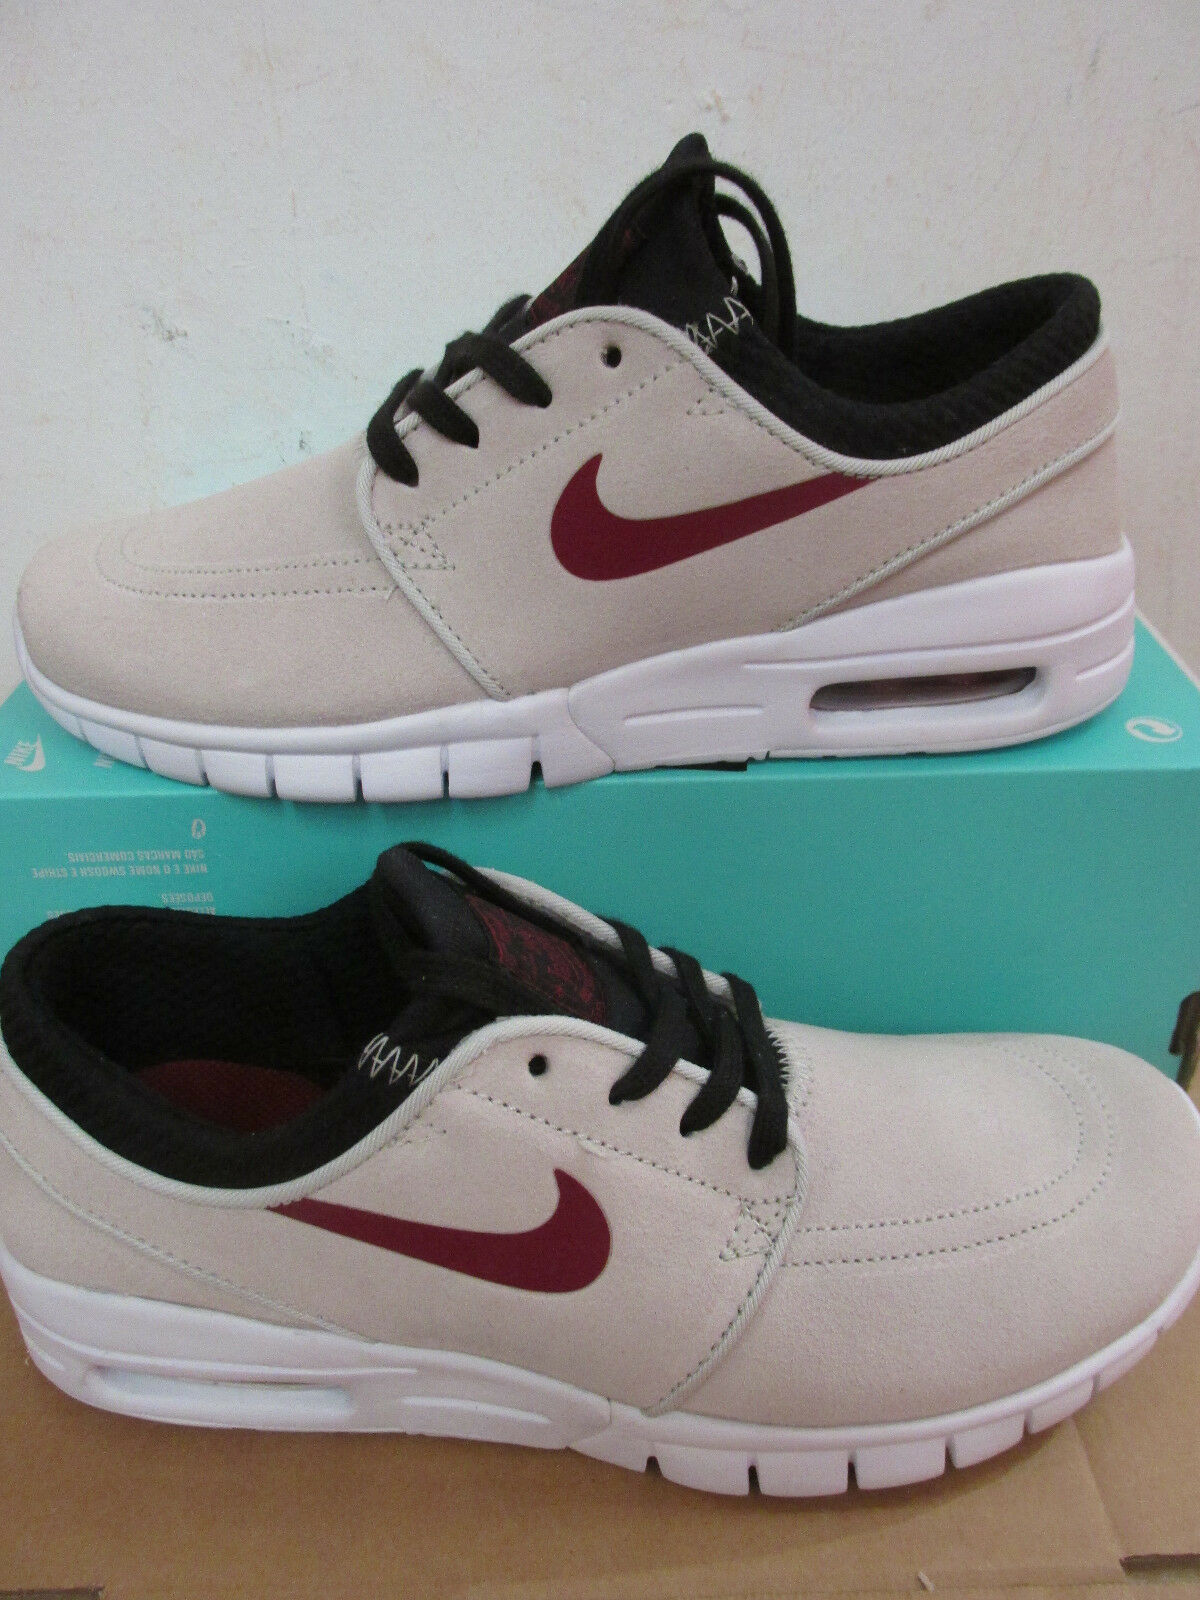 718581a69f Nike SB janoski MAX L mens trainers 685299 060 sneakers shoes CLEARANCE  stefan nekvsq1363-Athletic Shoes